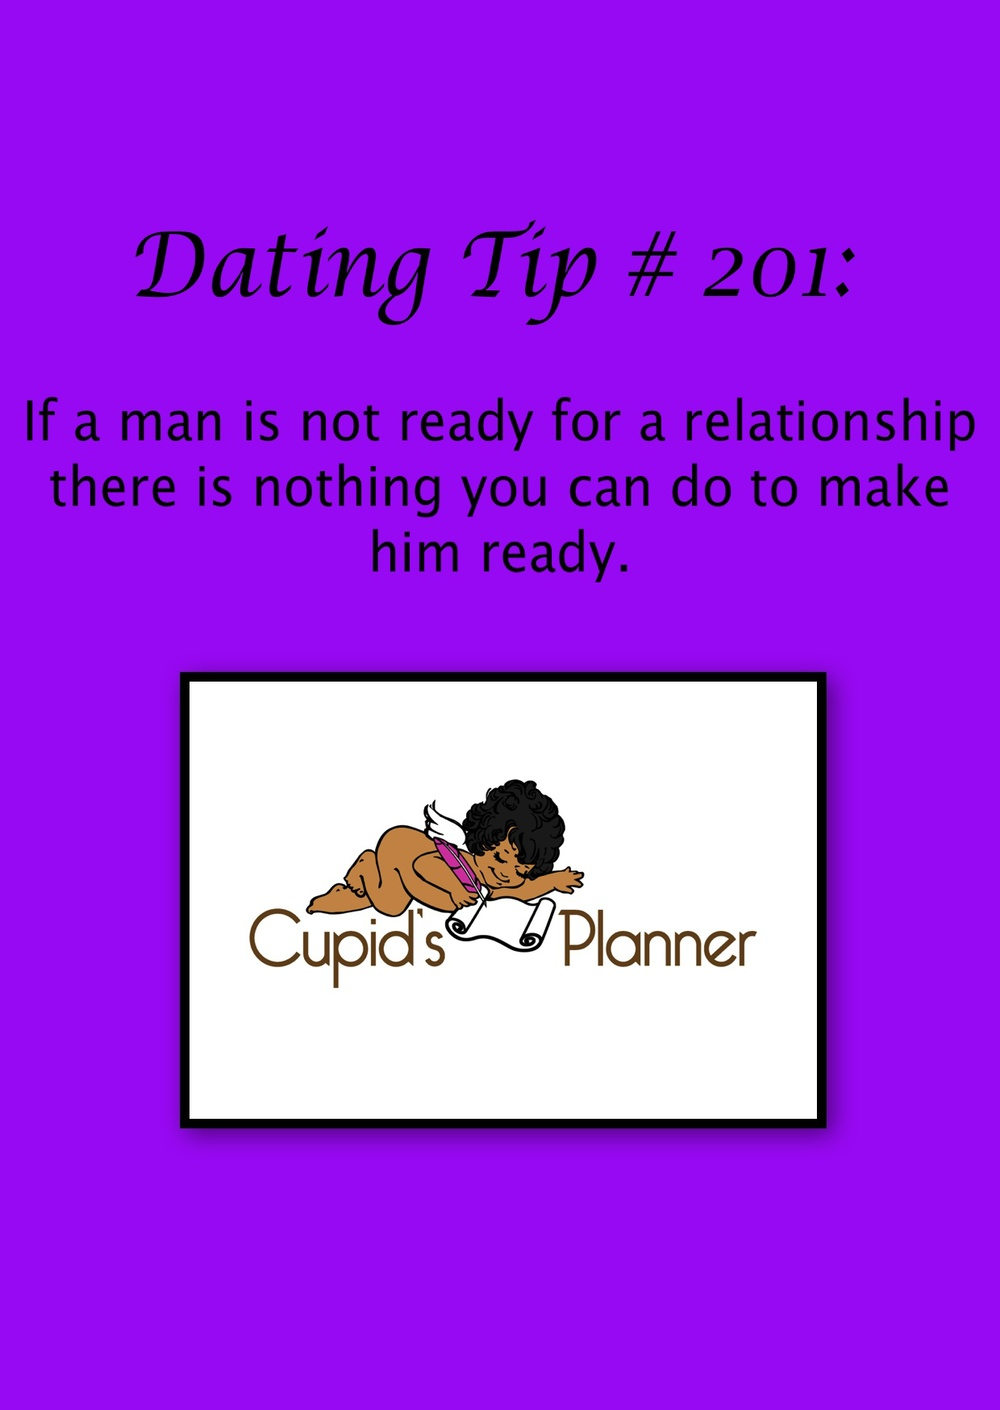 Dating Tip # 201: You cannot force a man to be ready for a relationship